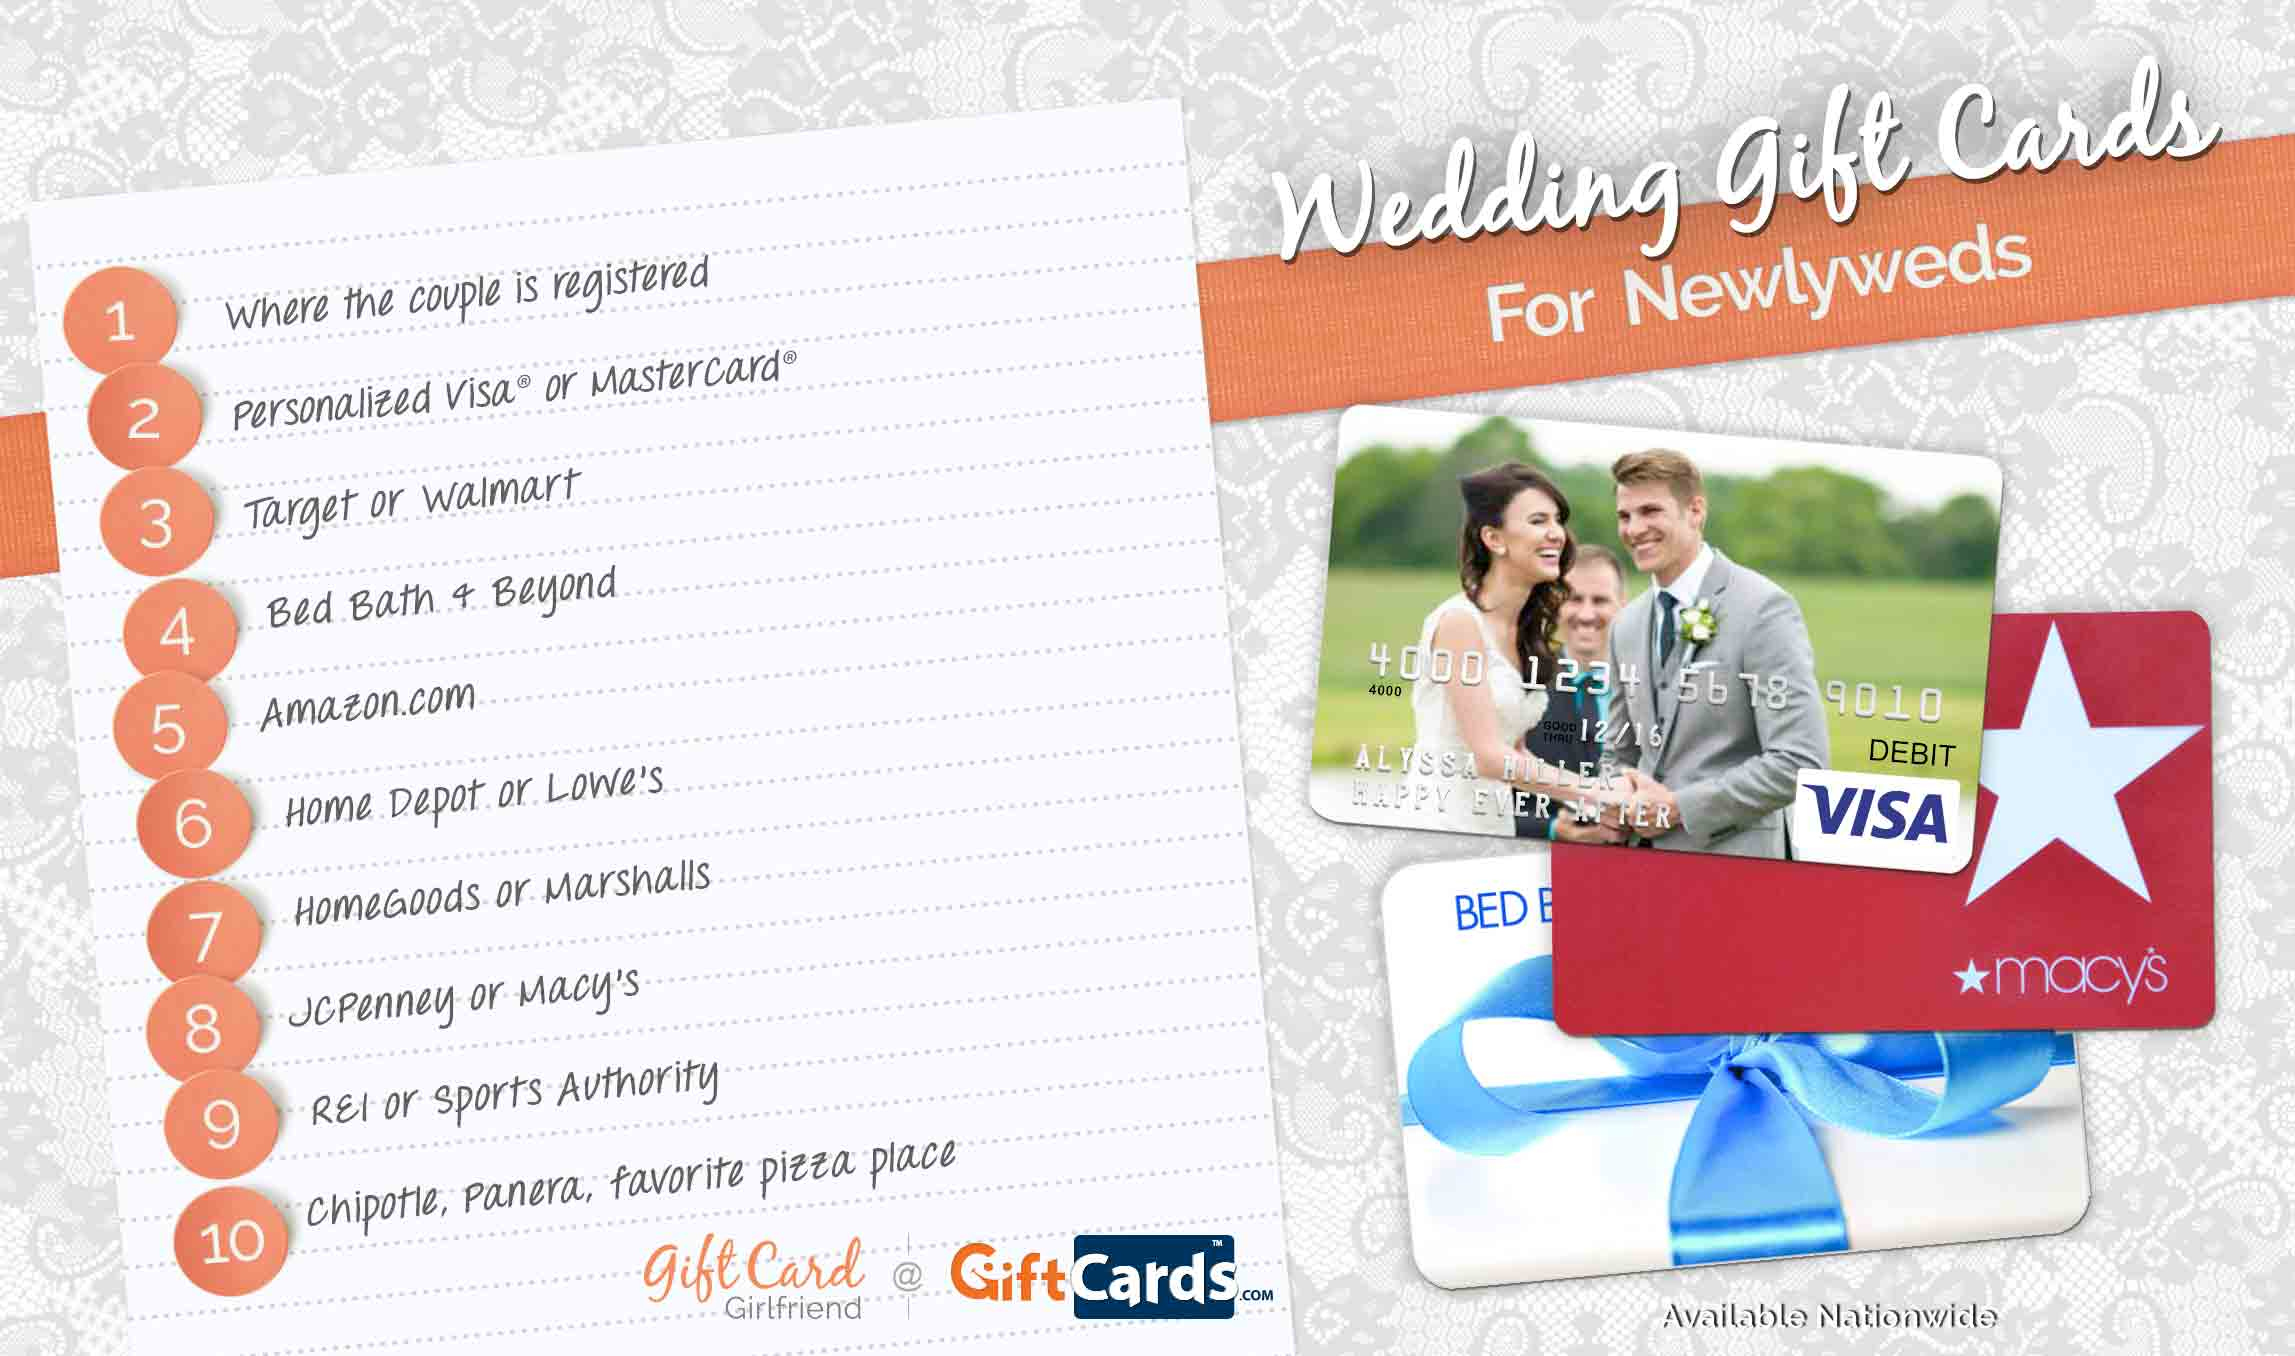 Wedding Gift Card Registry: Top 10 Wedding Gift Cards To Buy For Newlyweds